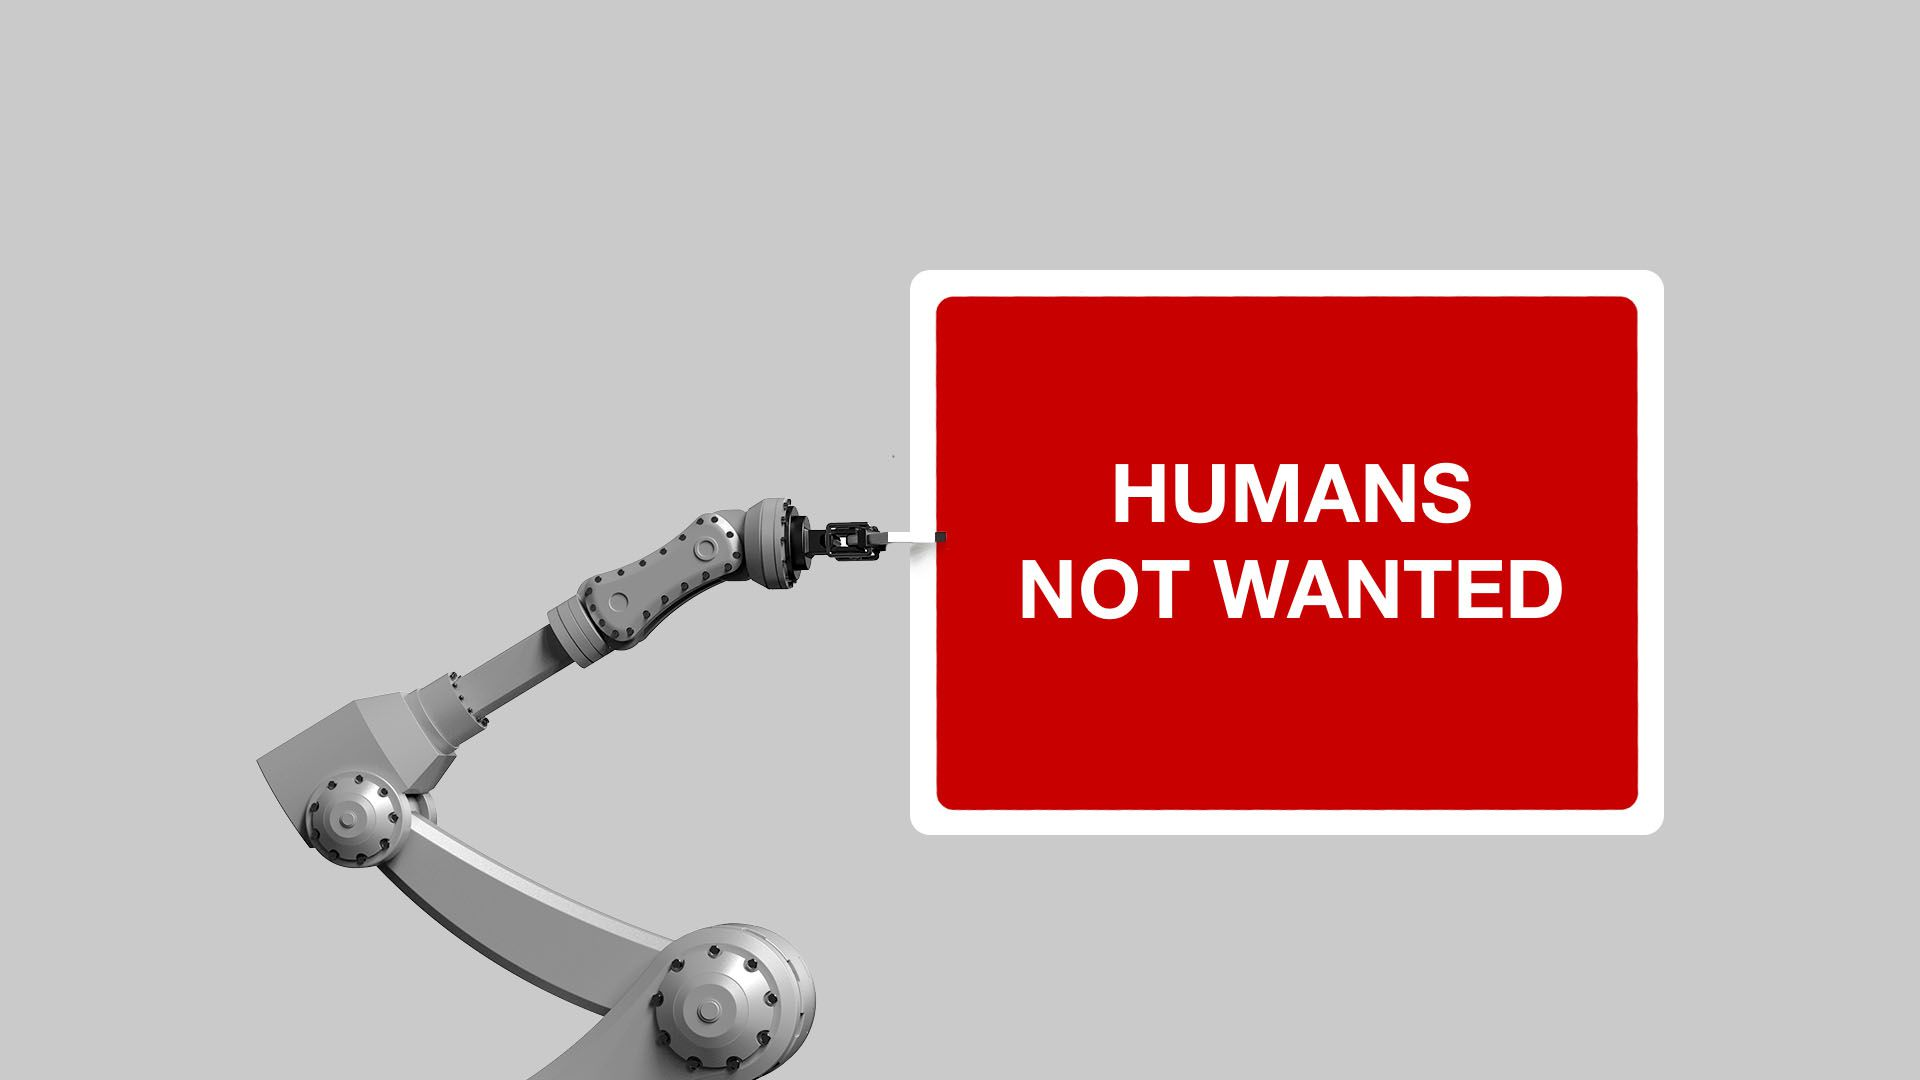 Illustration of a mechanical arm holding a hiring sign